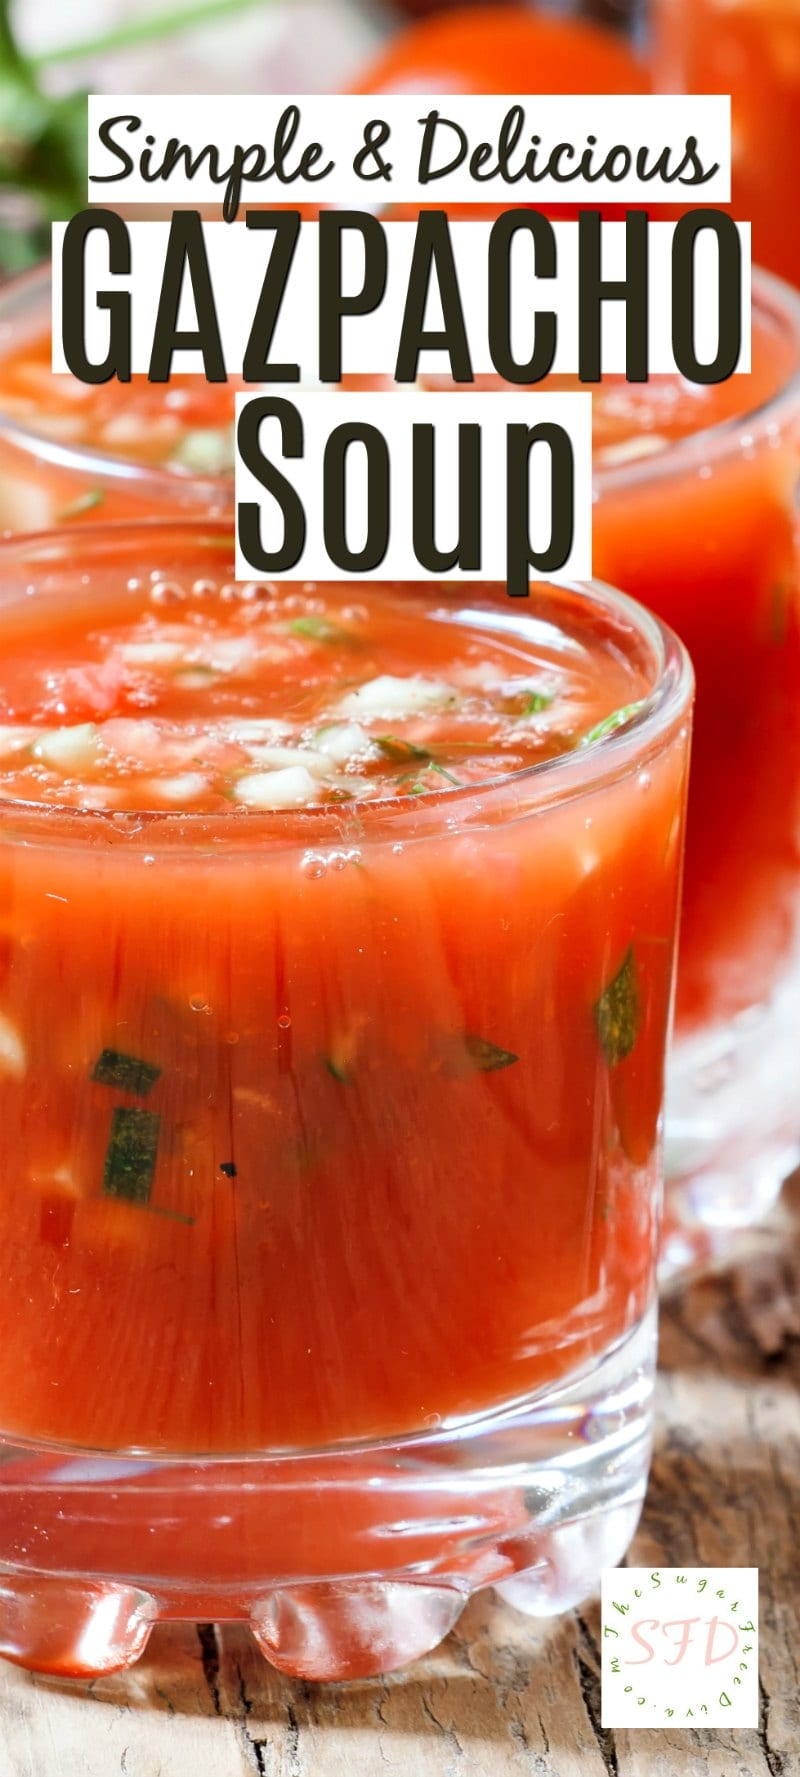 Simple and Delicious Gazpacho Soup